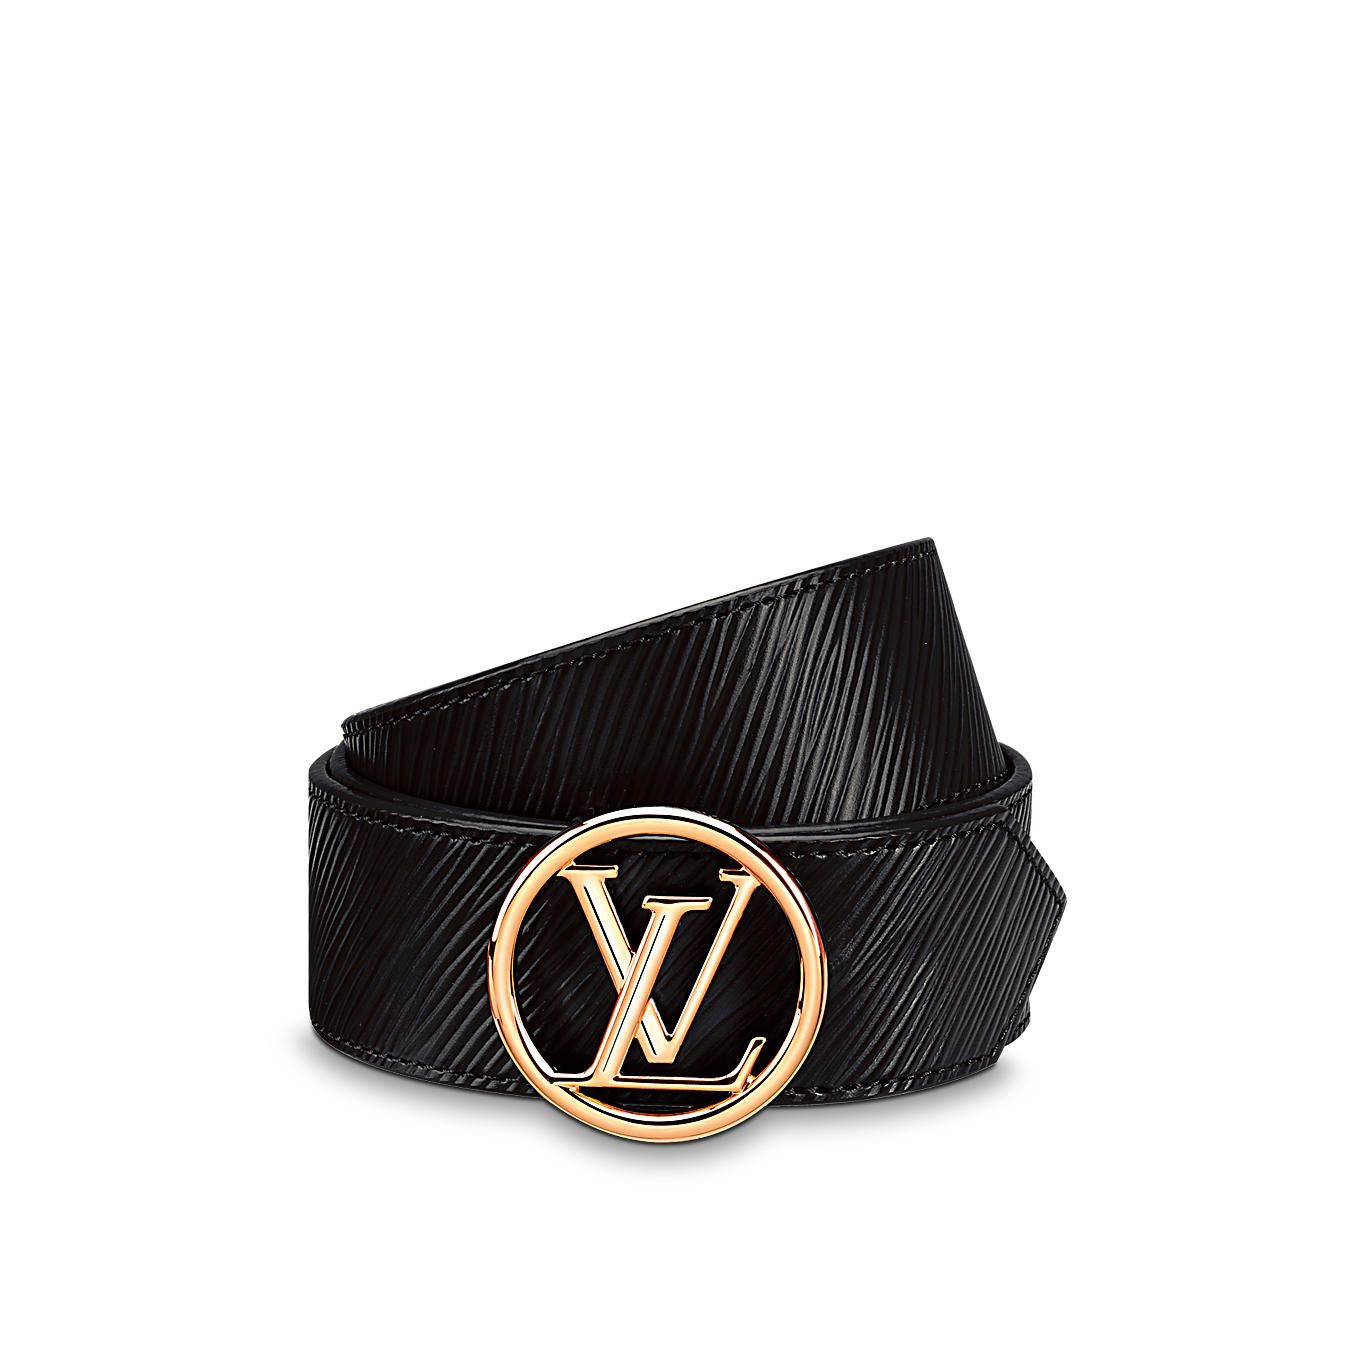 9e9d7fd6fe5 LV Circle 35mm Reversible Epi Leather in WOMEN's ACCESSORIES BELTS  collections by Louis Vuitton